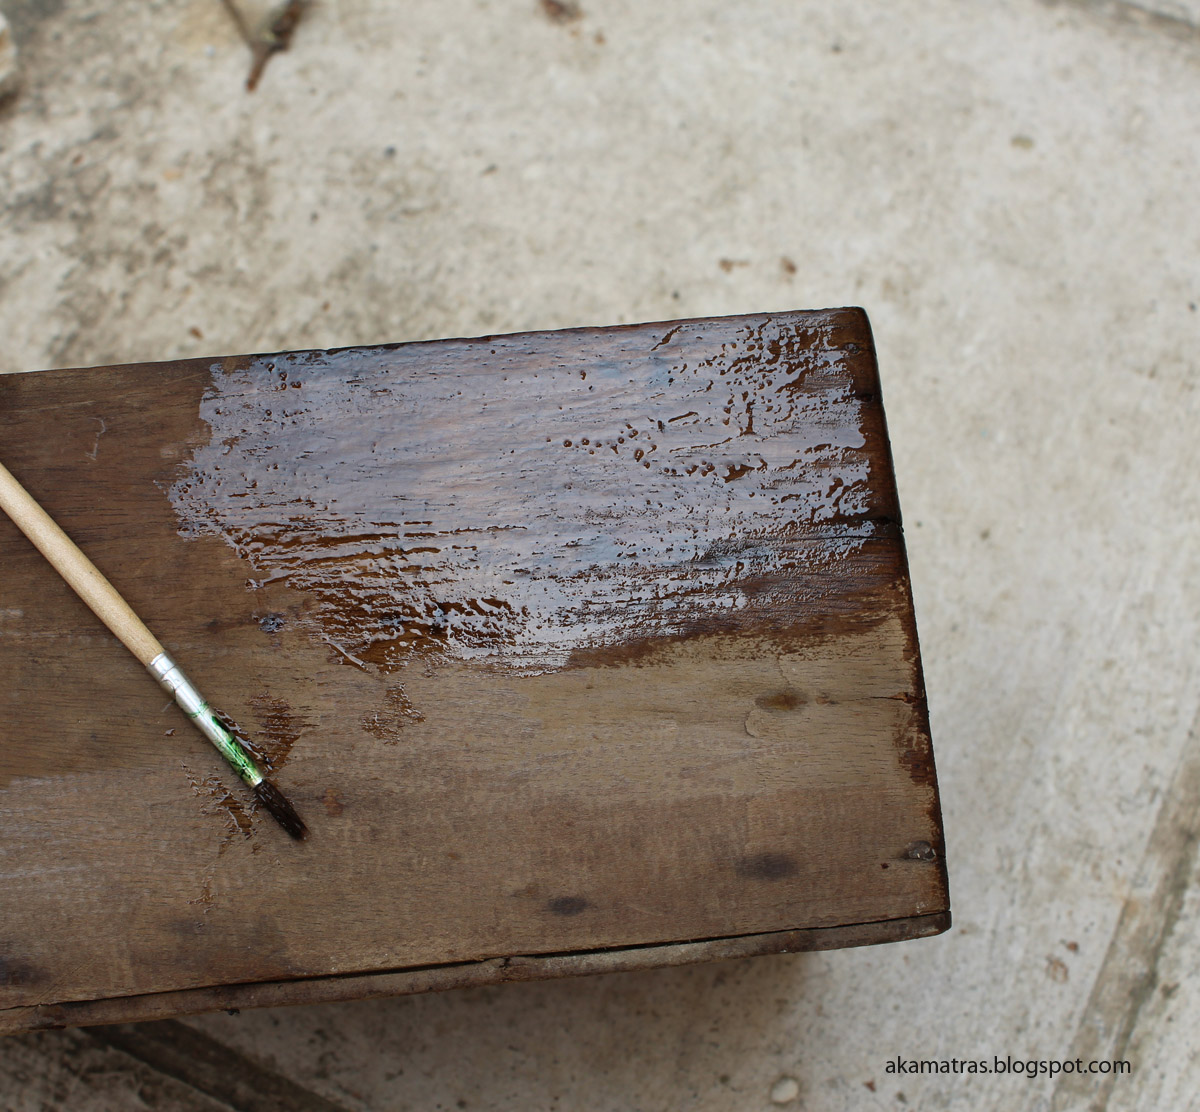 Reclaimed wooden planter for succulents - DIY - Akamatra on diy planters, seed planters, long planters, desert planters, mccoy pottery planters, green planters, tropical planters, vegetable planters, big planters, simple planters, red planters, rose planters, beautiful planters, cactus planters, garden planters, plant planters, tree planters, bonsai planters, flower planters, orchid planters,